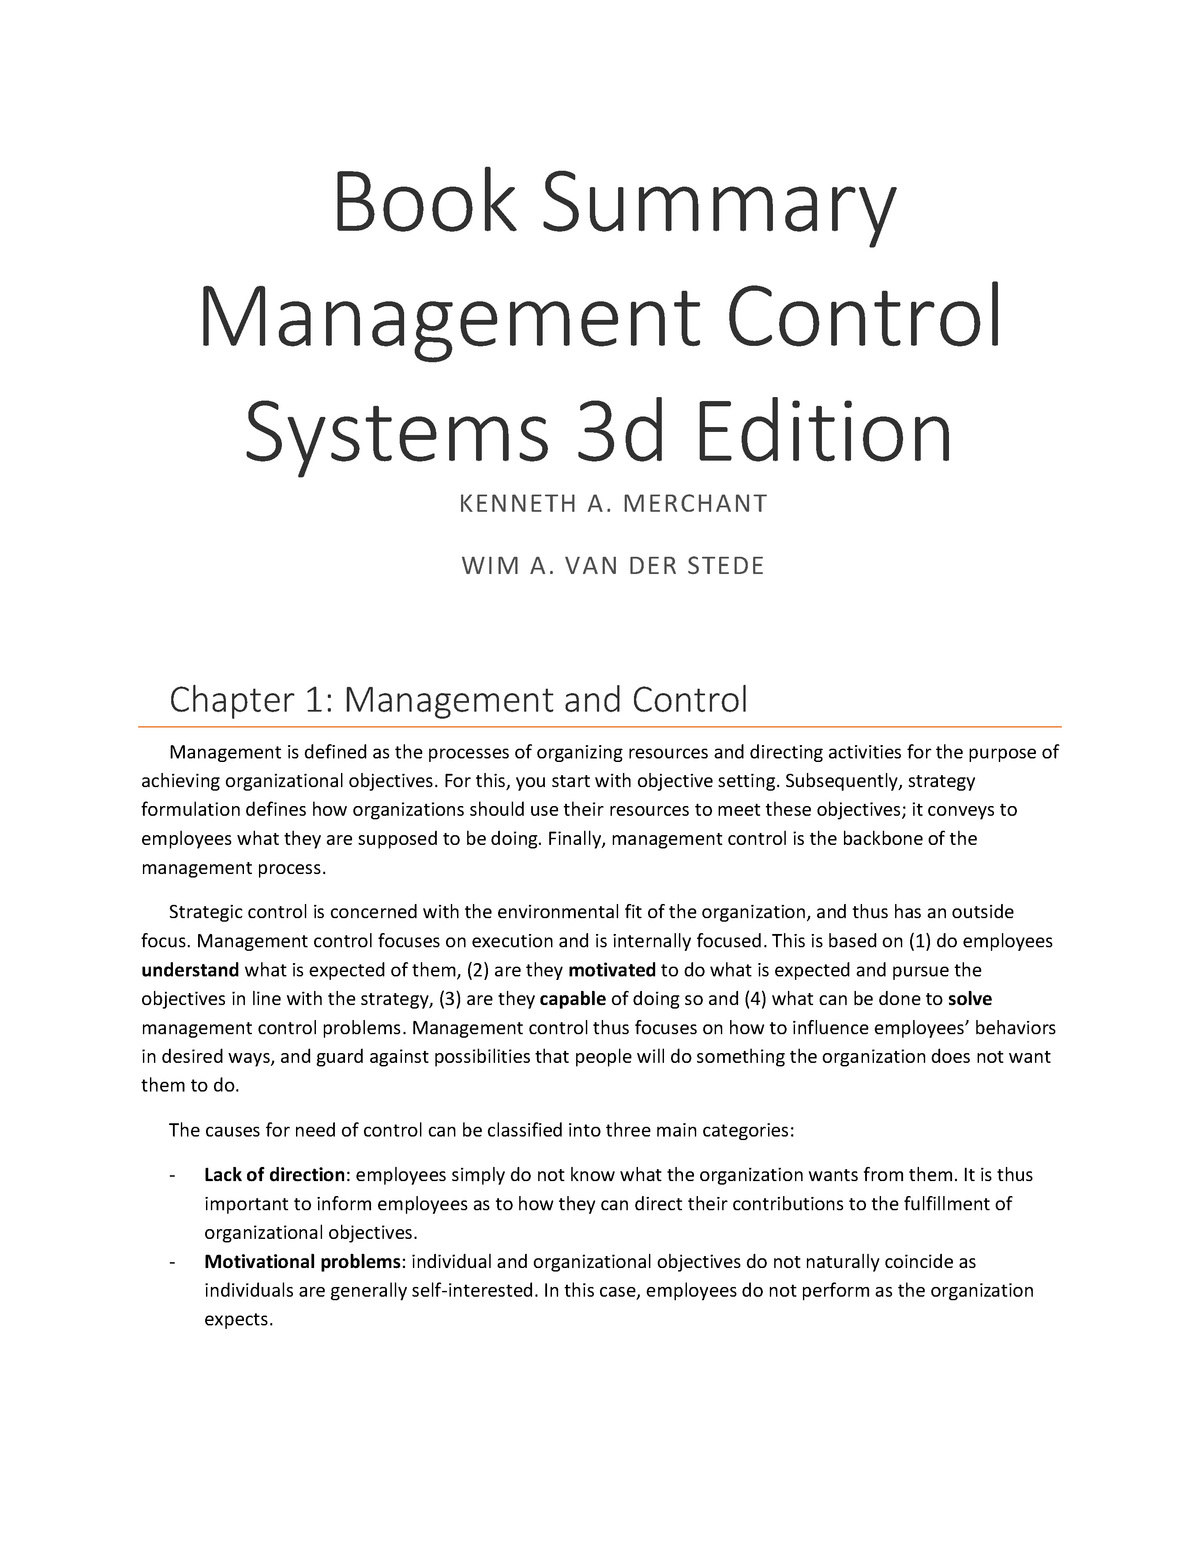 Book Summary Management Control Systems 3d Edition - 401391